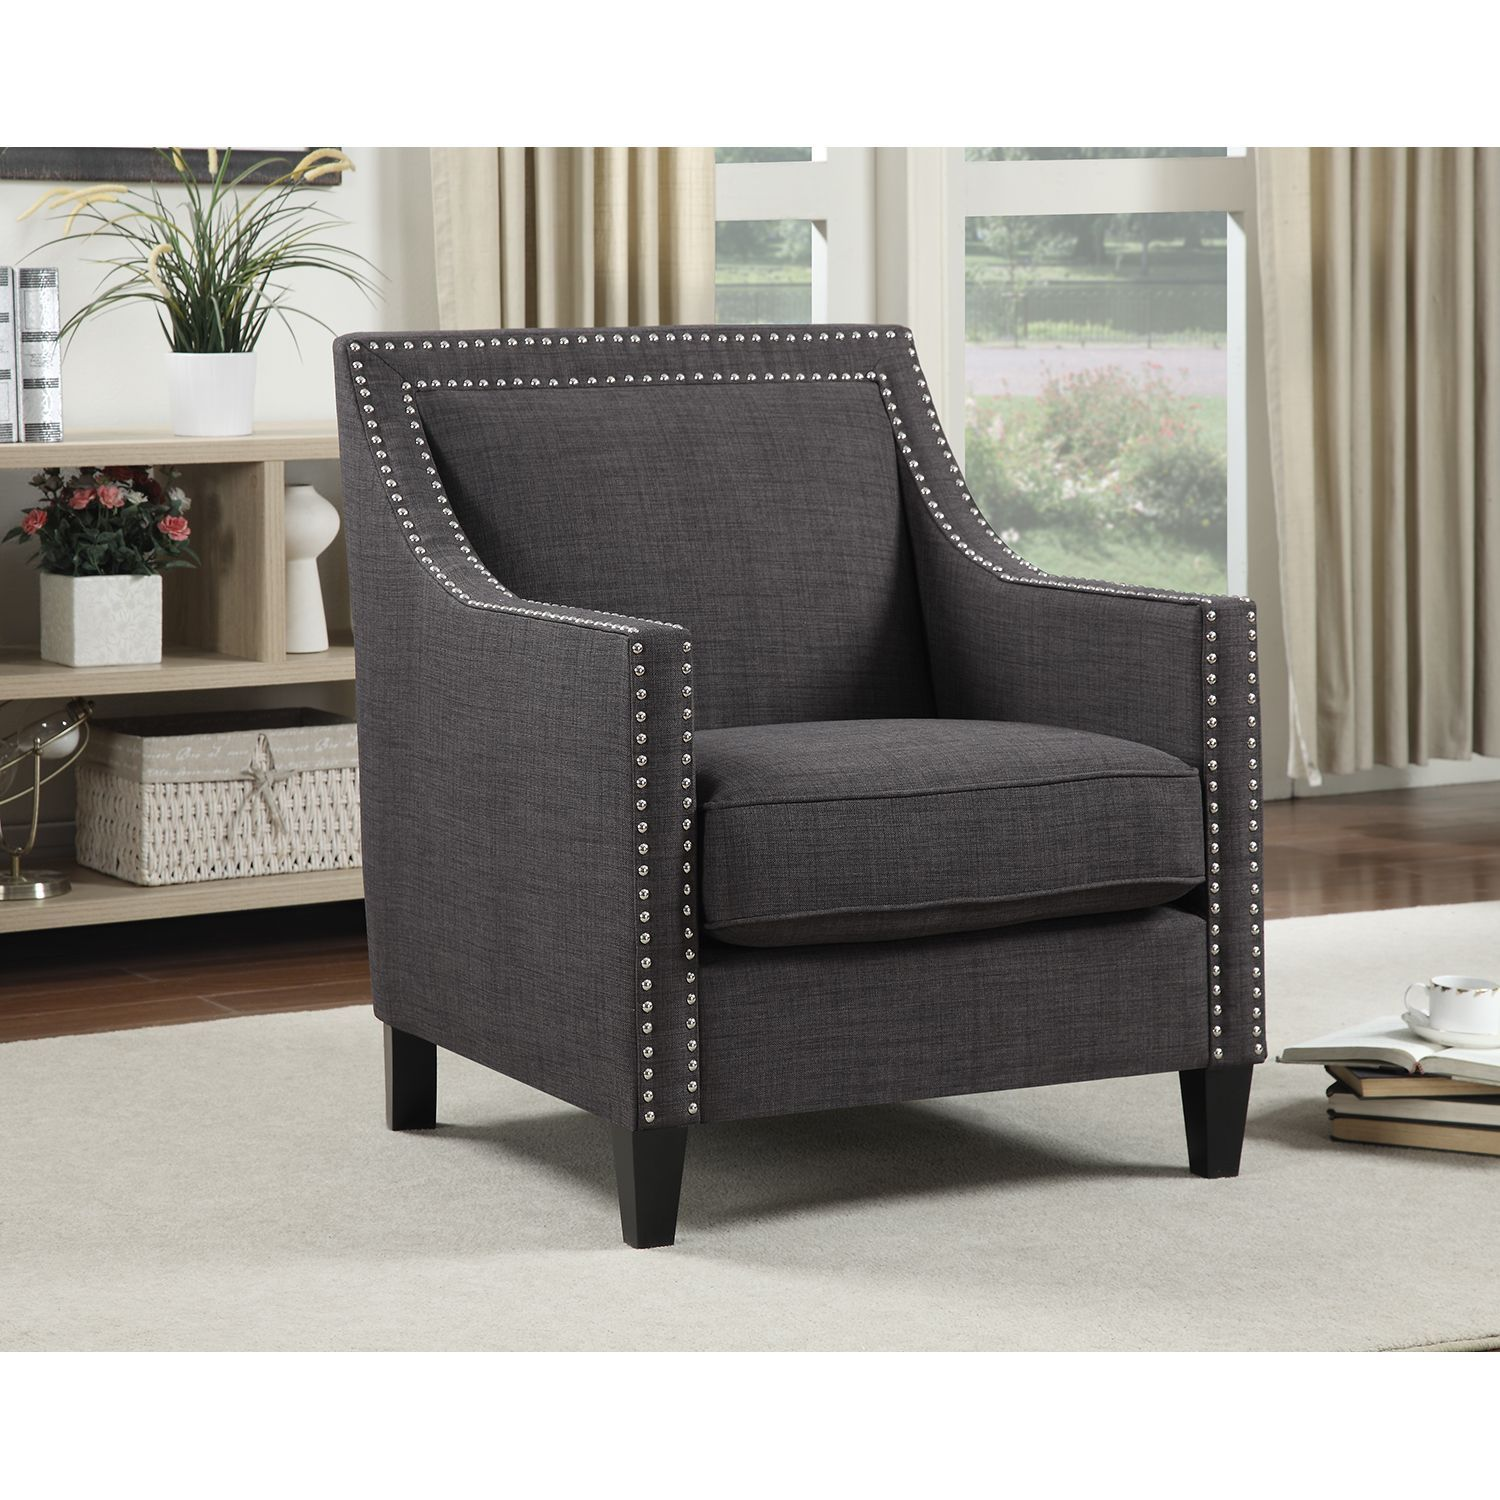 Emery Upholstered Chair (Assorted Colors) | Housewarming ...